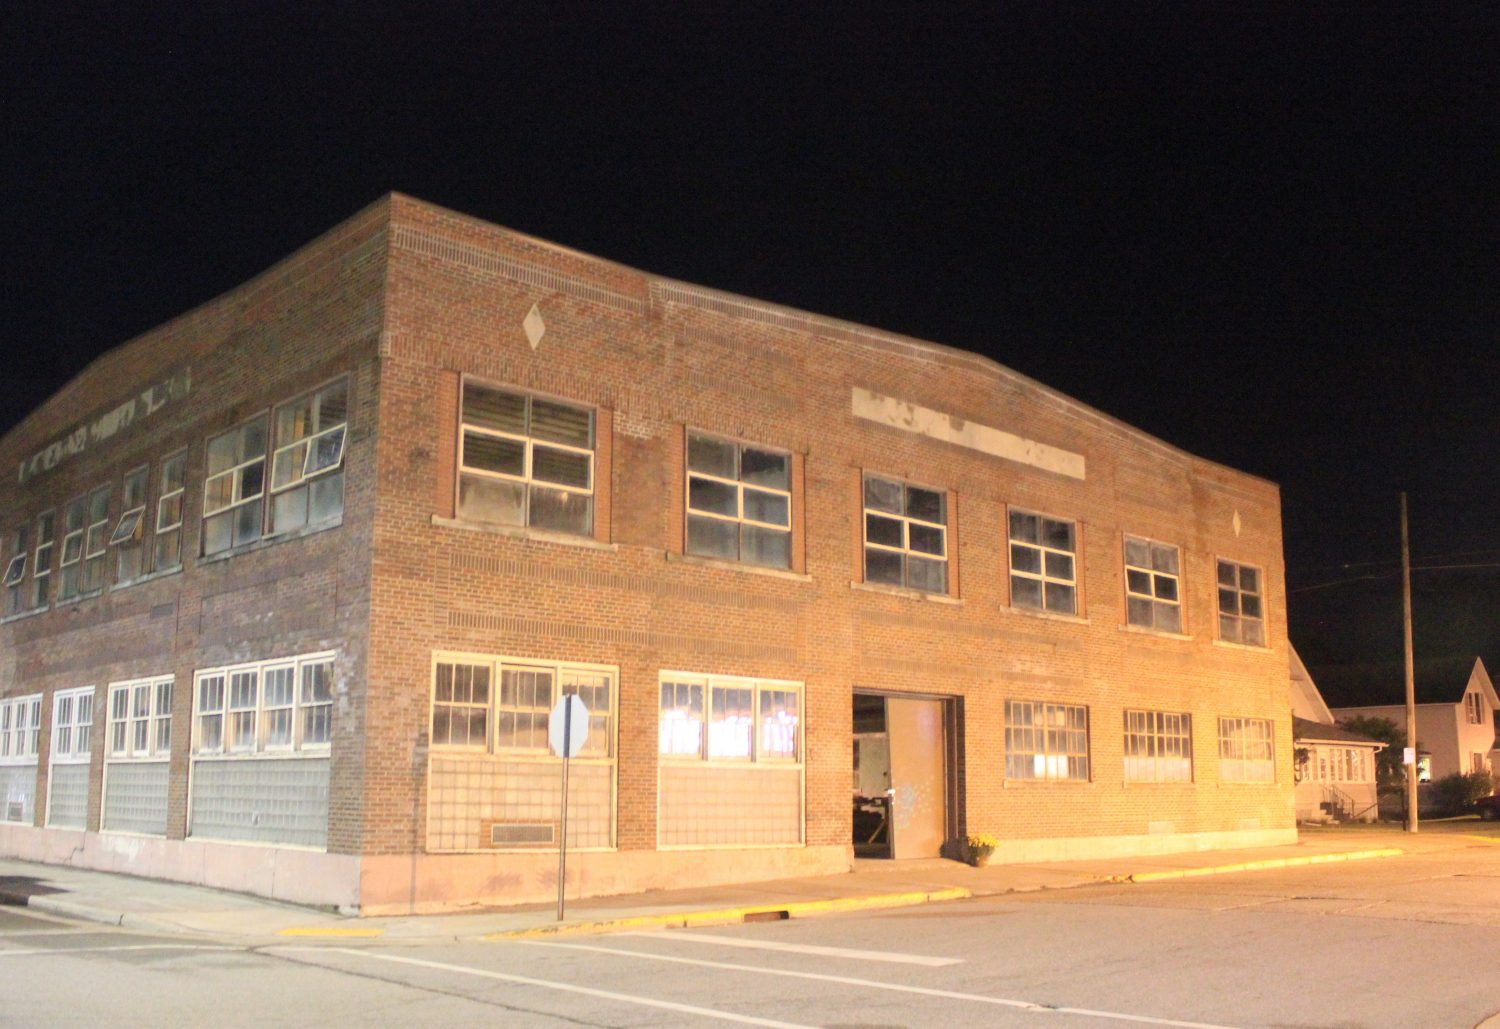 The former vocational school and armory building on West Main Street is undergoing a revitalization after years of neglect.